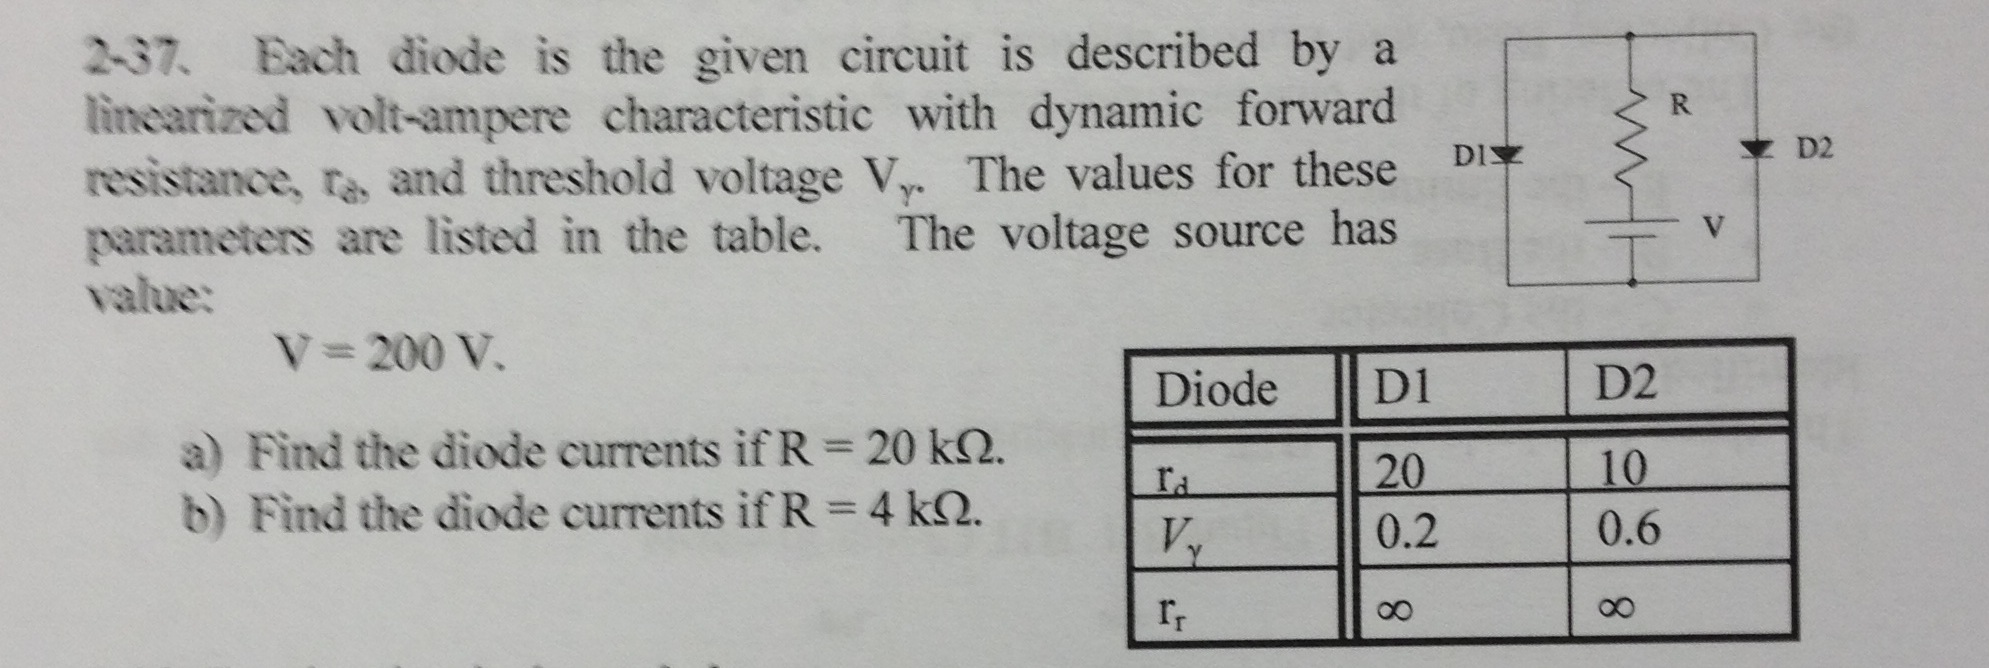 Each diode is the given circuit is described by a